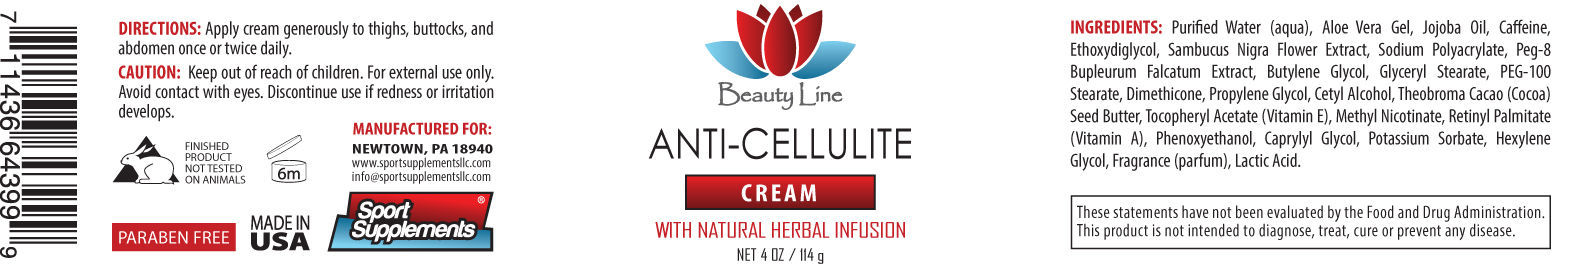 Phenoxyethanol - Anti Cellulite Cream 4oz - Heals cracked Heels 1C